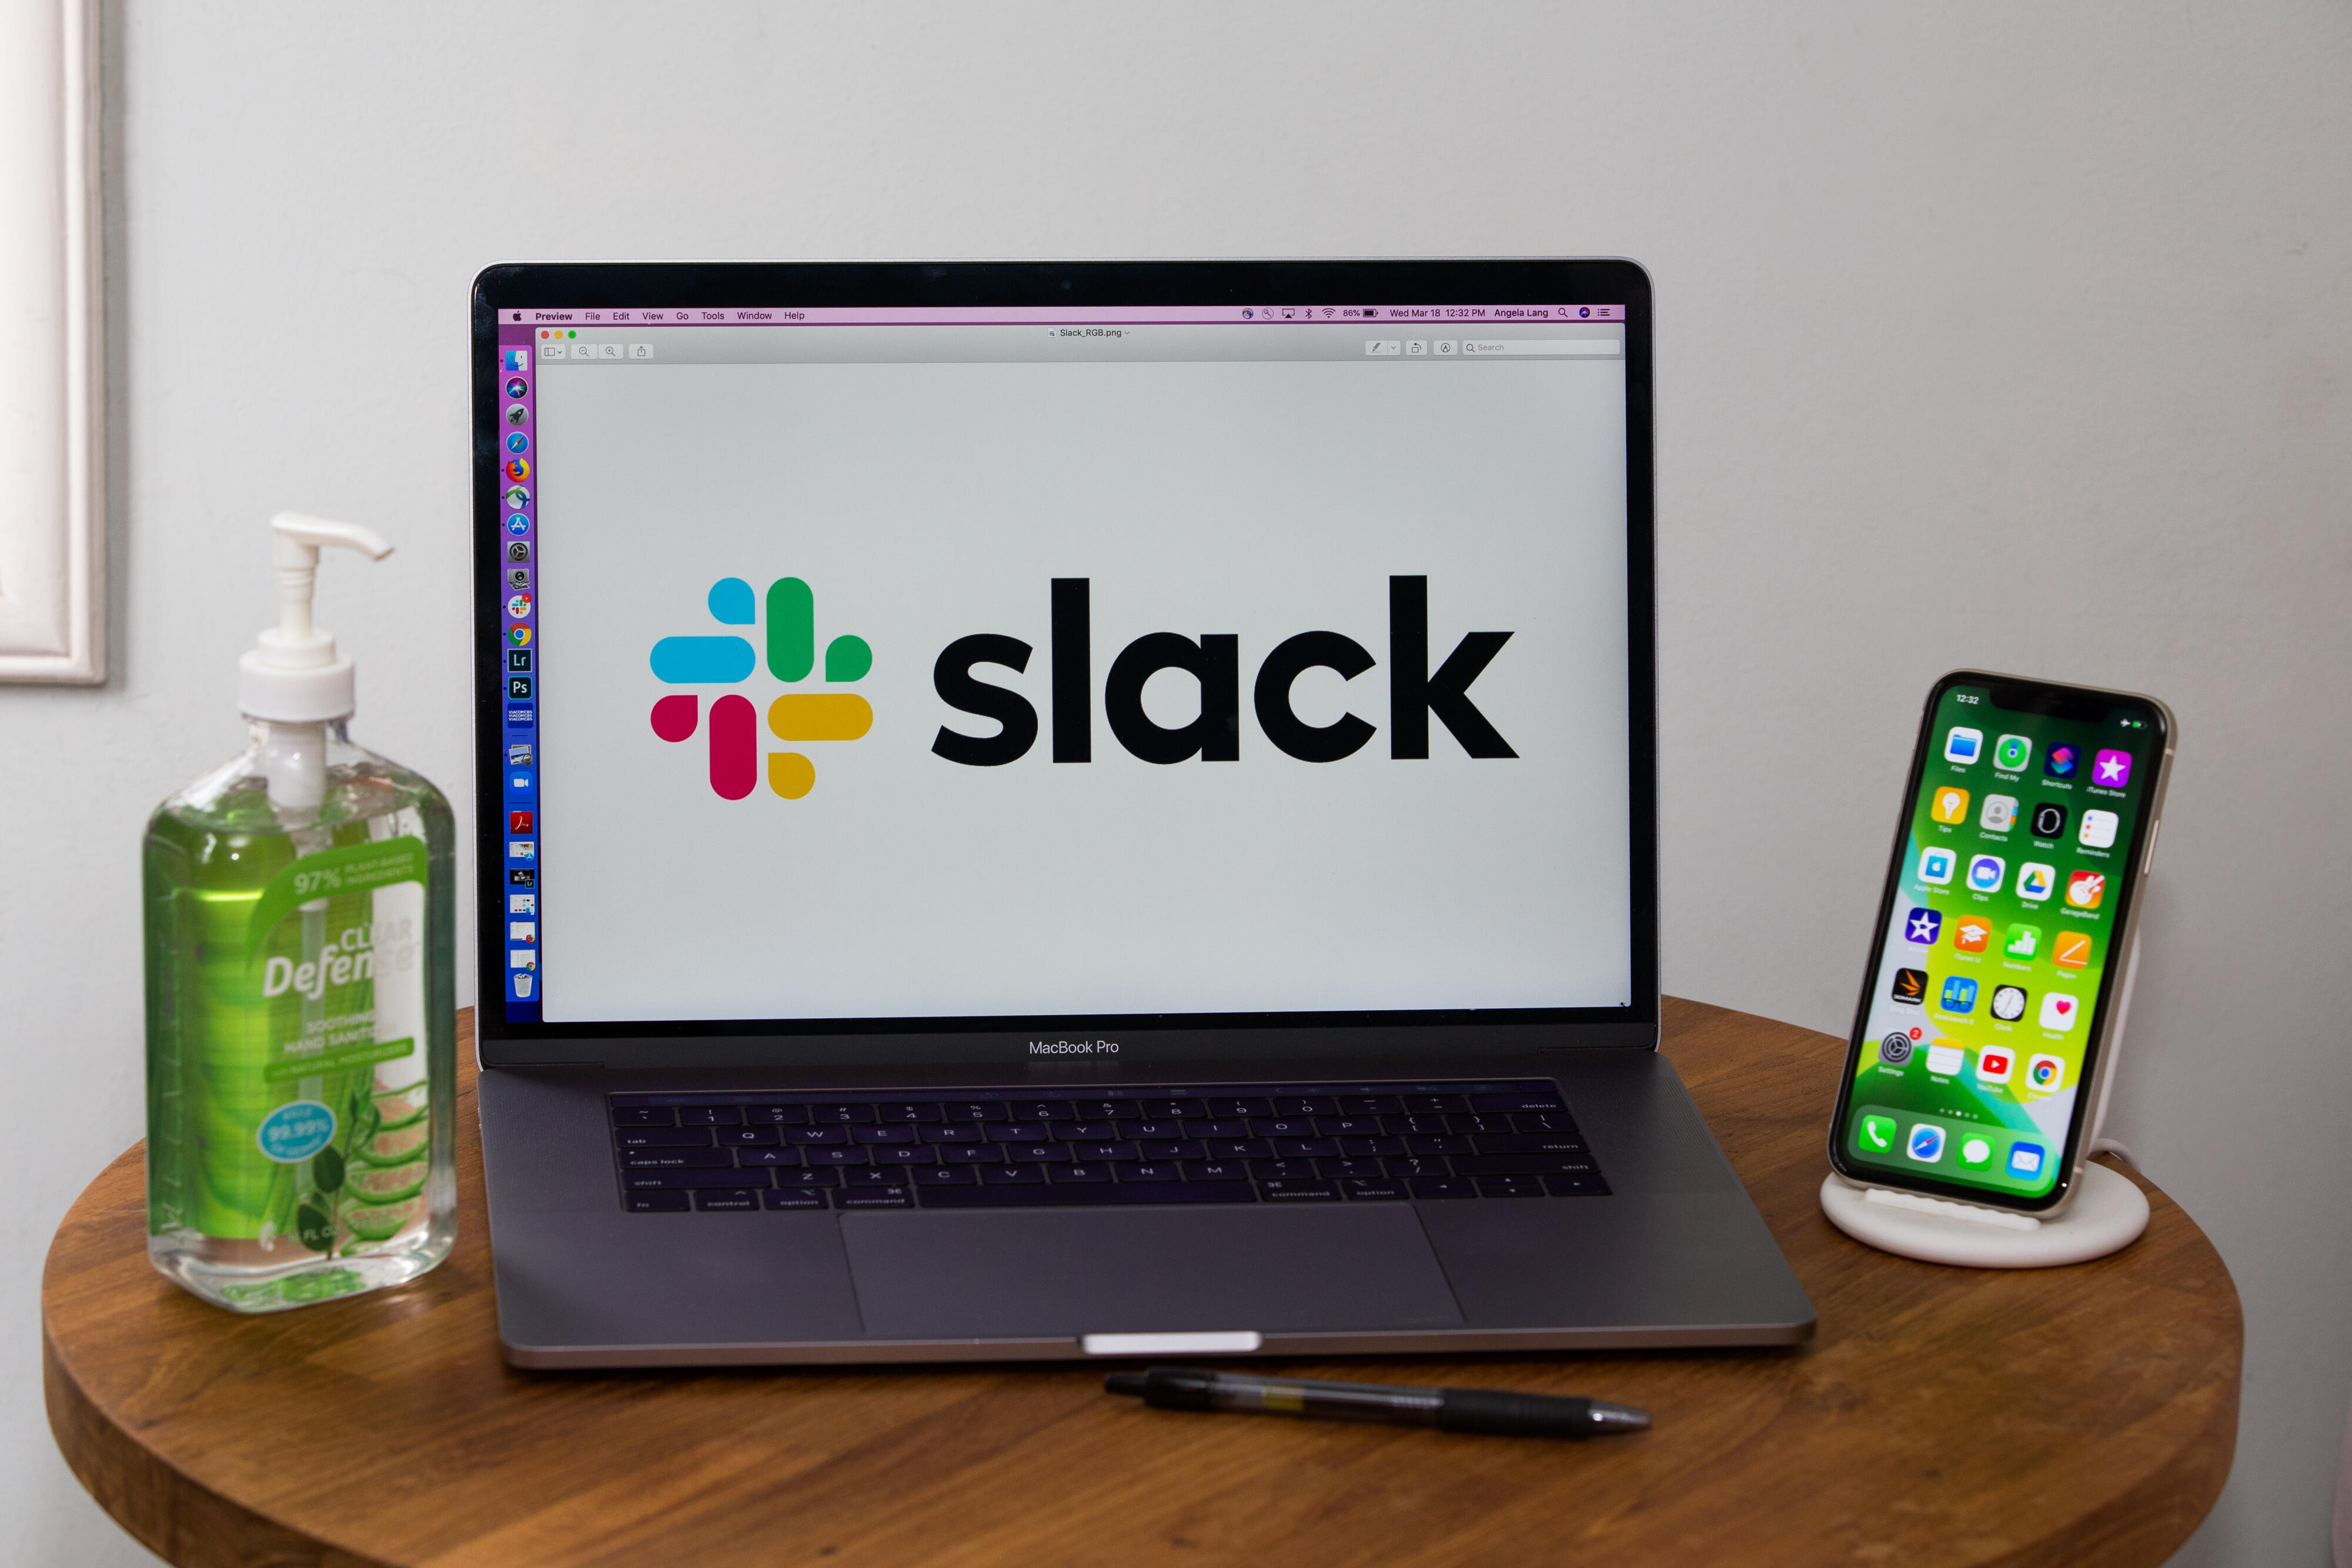 wfh-work-from-home-slack-0797